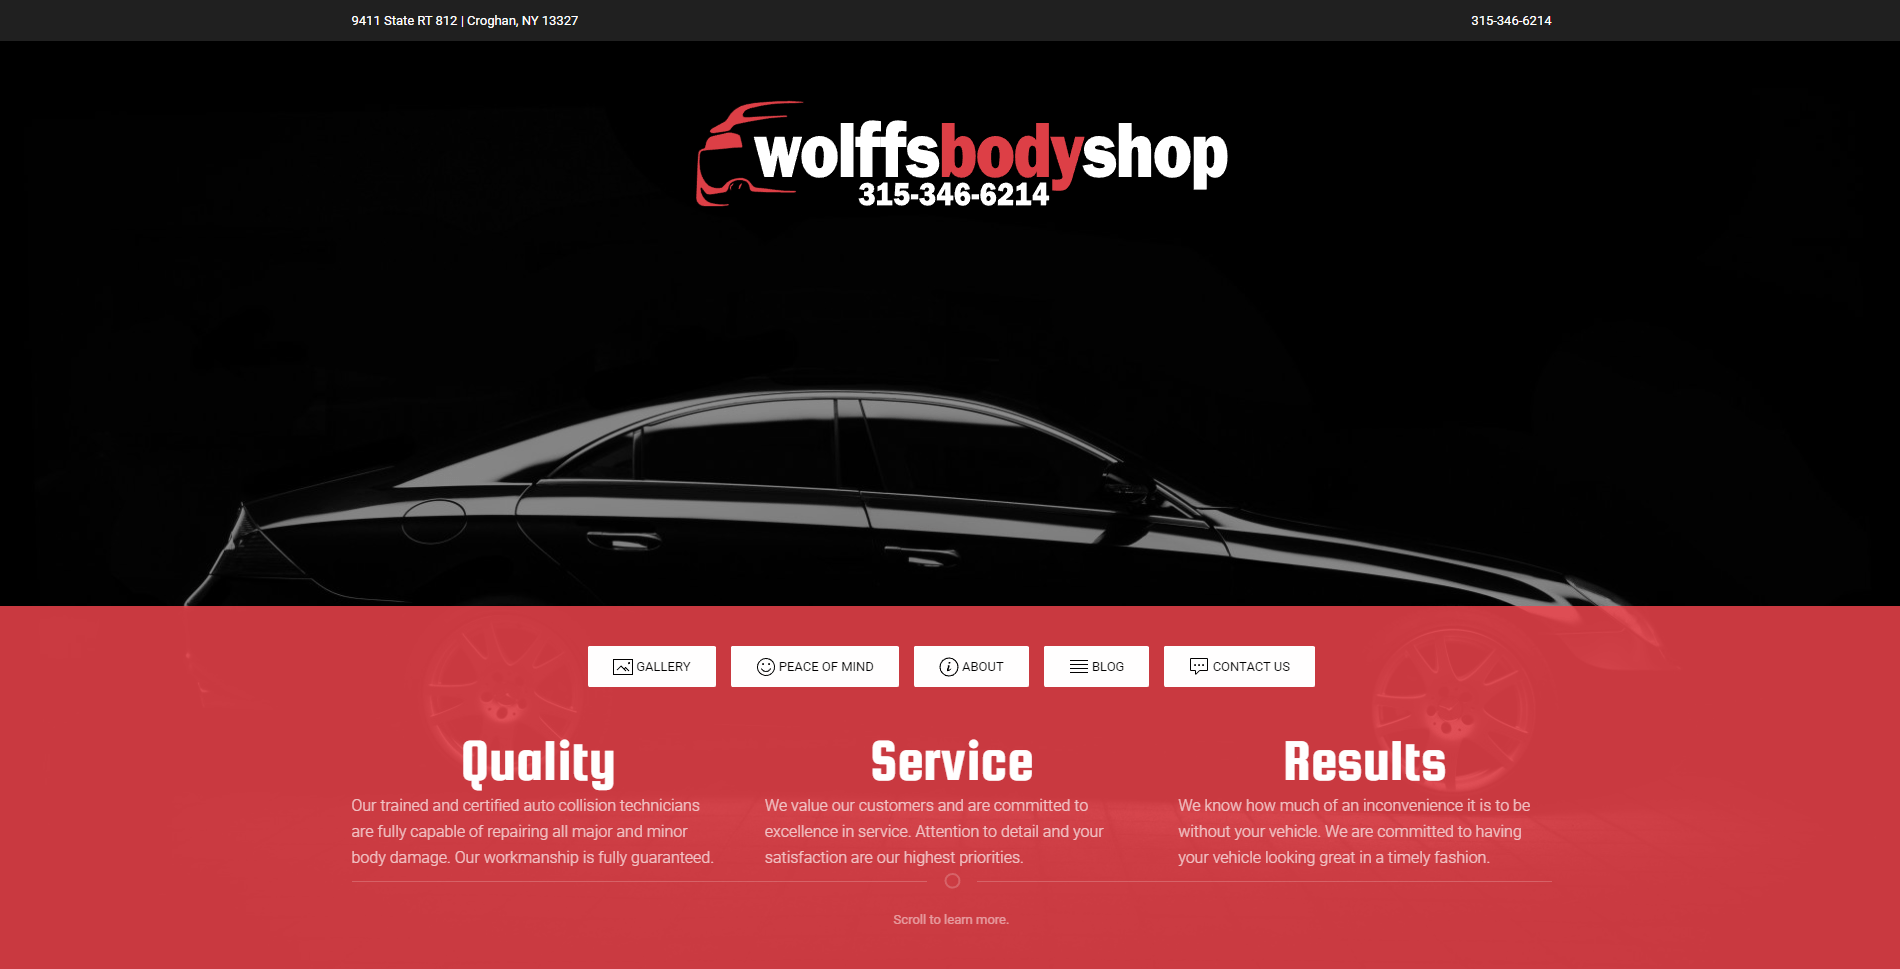 Wolff's Body Shop